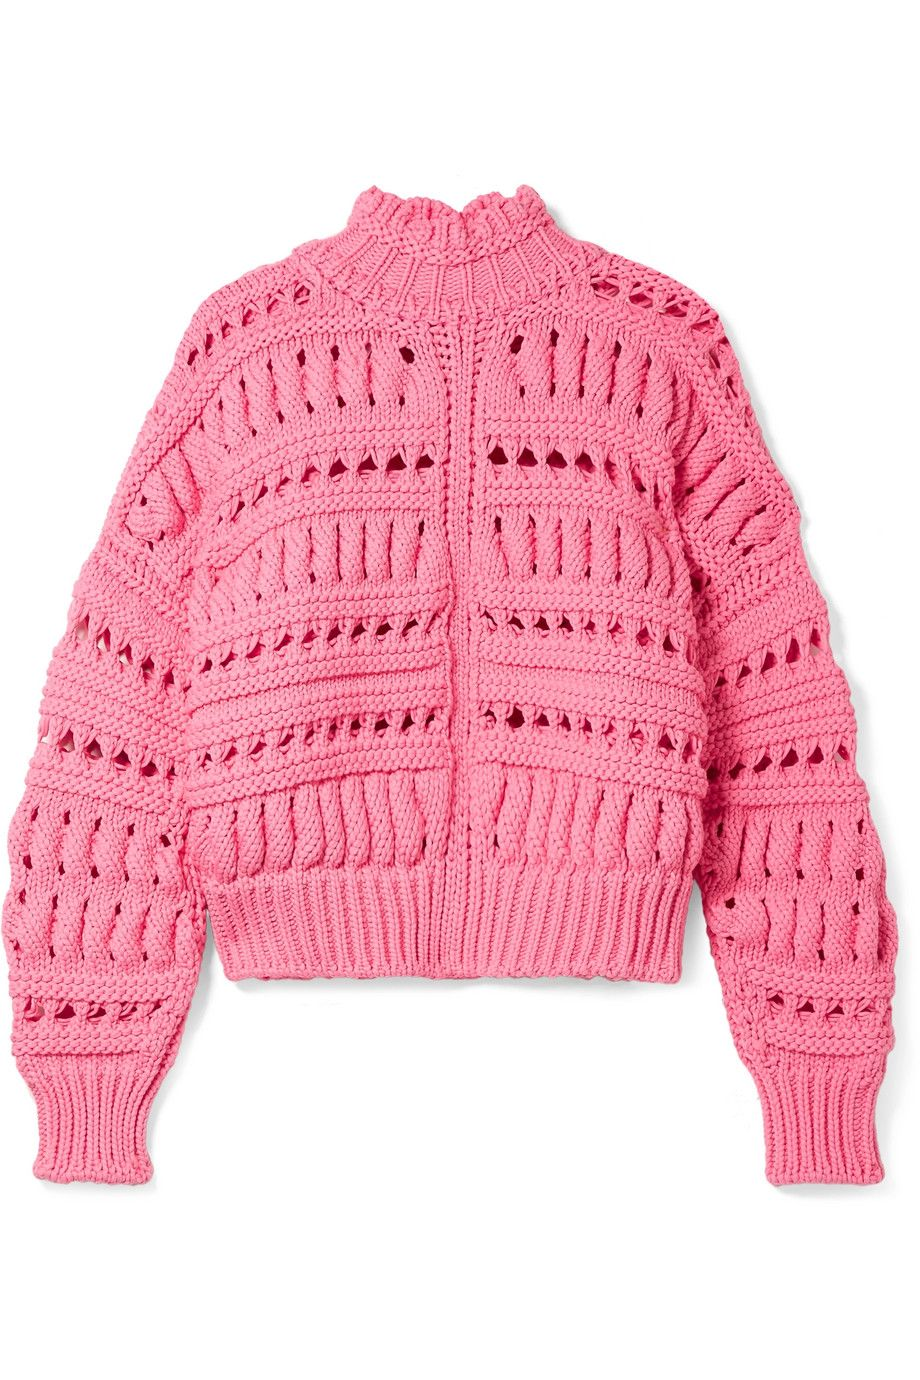 95a39c87e 15 Best Sweaters For Fall 2018 - Warm Sweaters for Fall and Winter